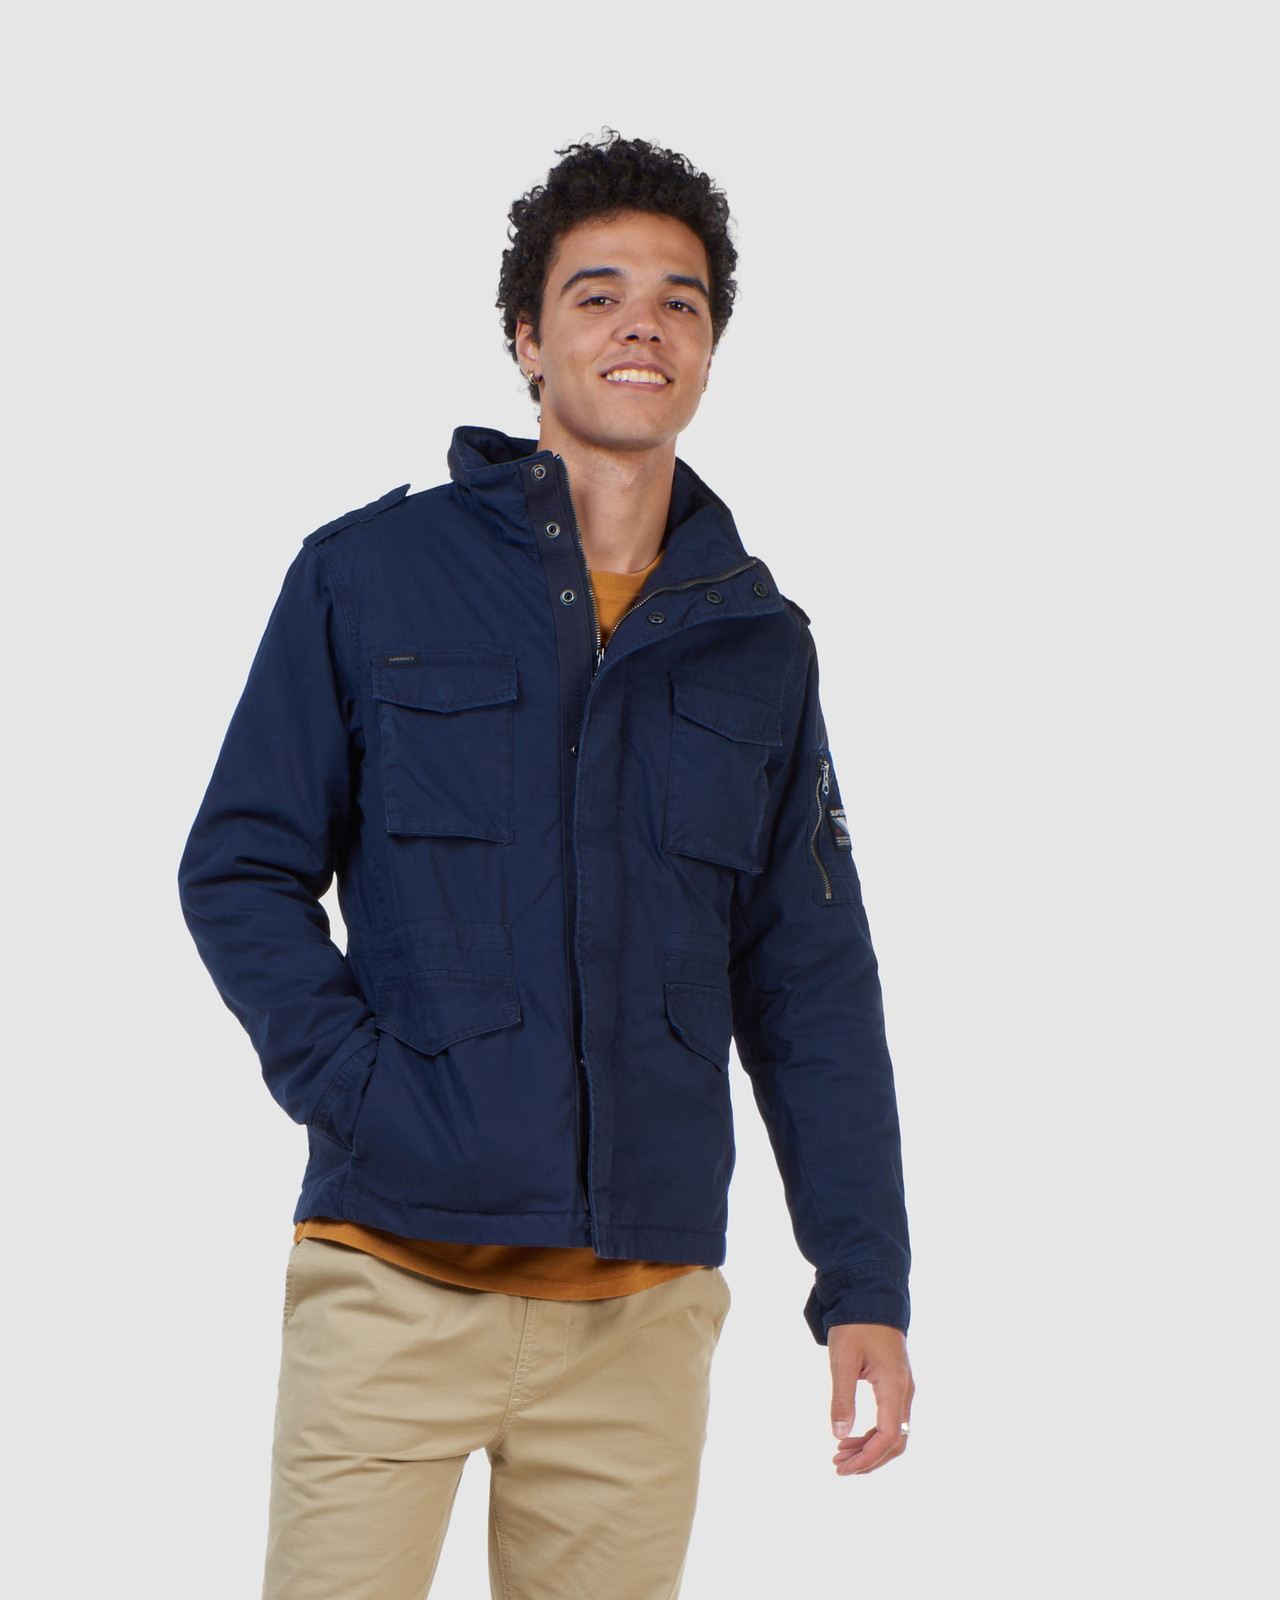 Superdry Mens CLASSIC RECRUIT JACKET Navy Military Jackets 11